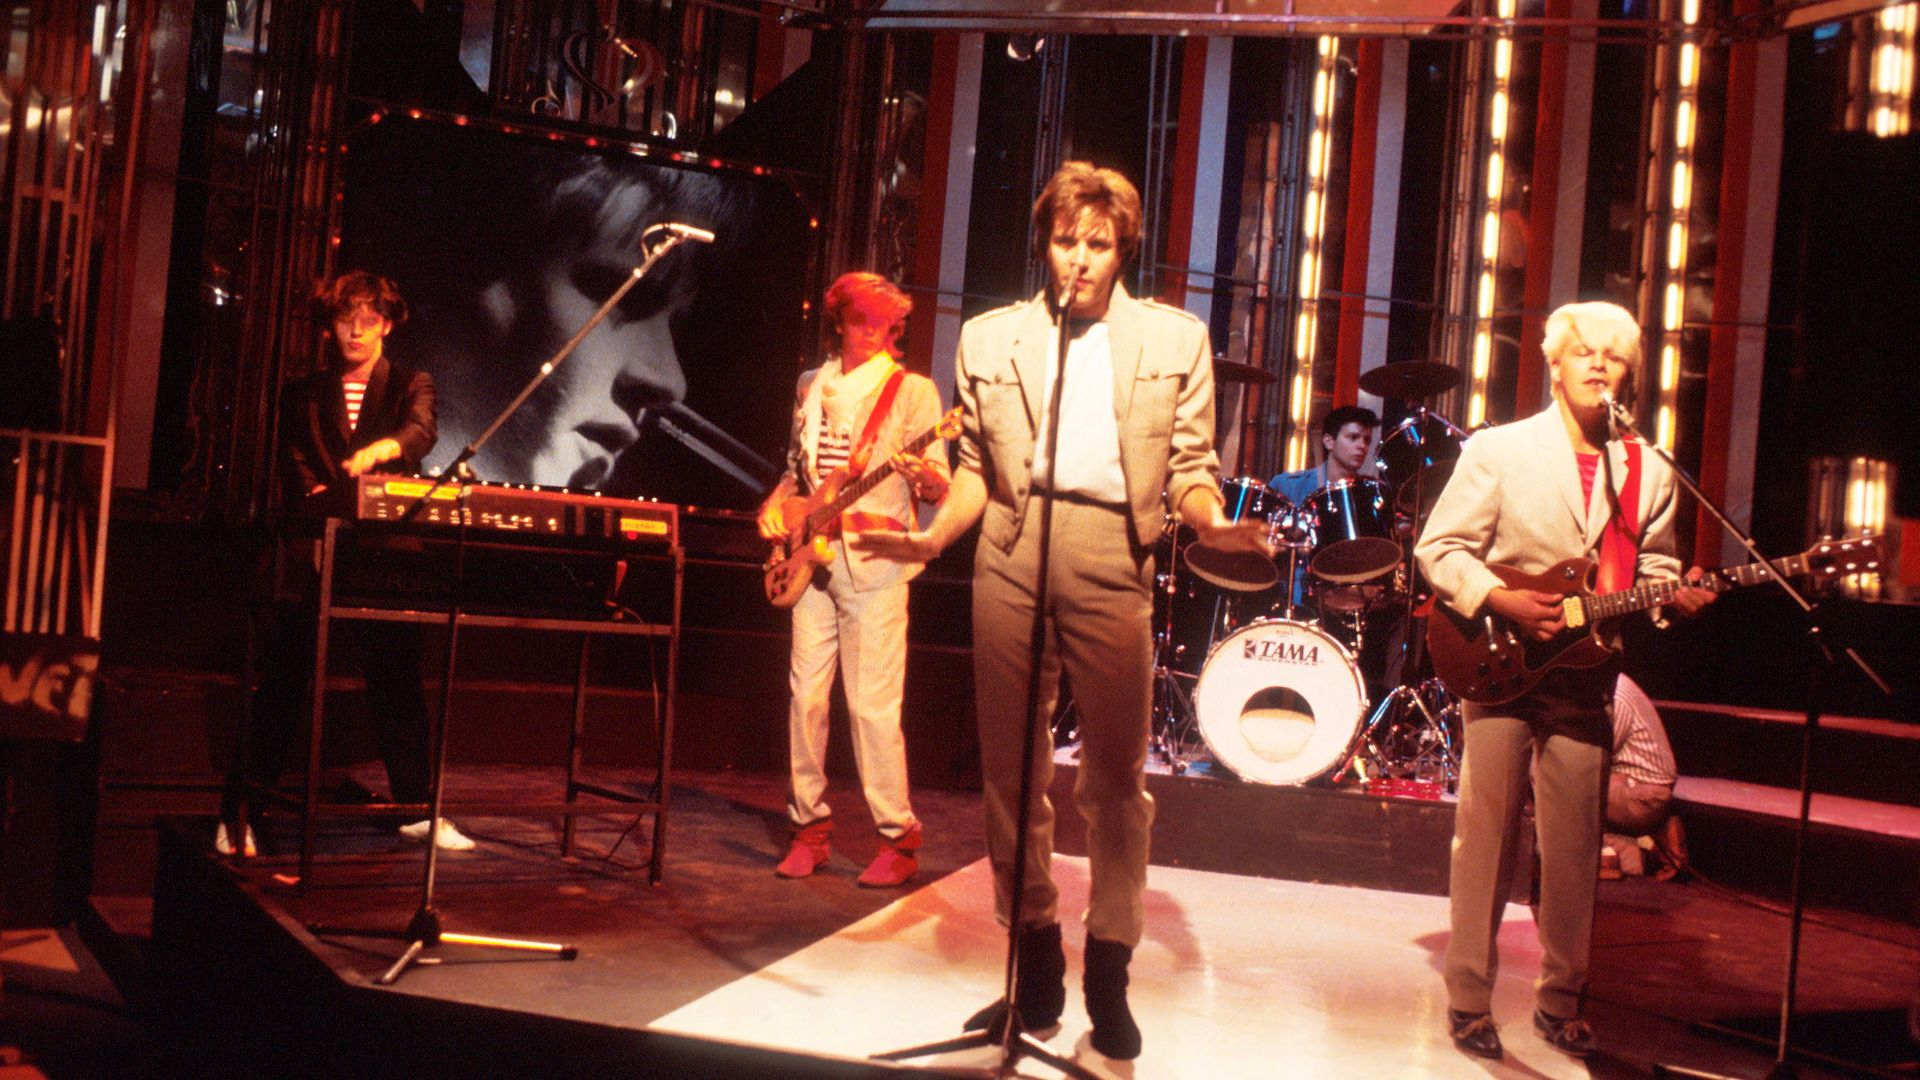 Duran Duran perform Girls on Film on Top of the Pops in 1981 - Credit: Getty Images